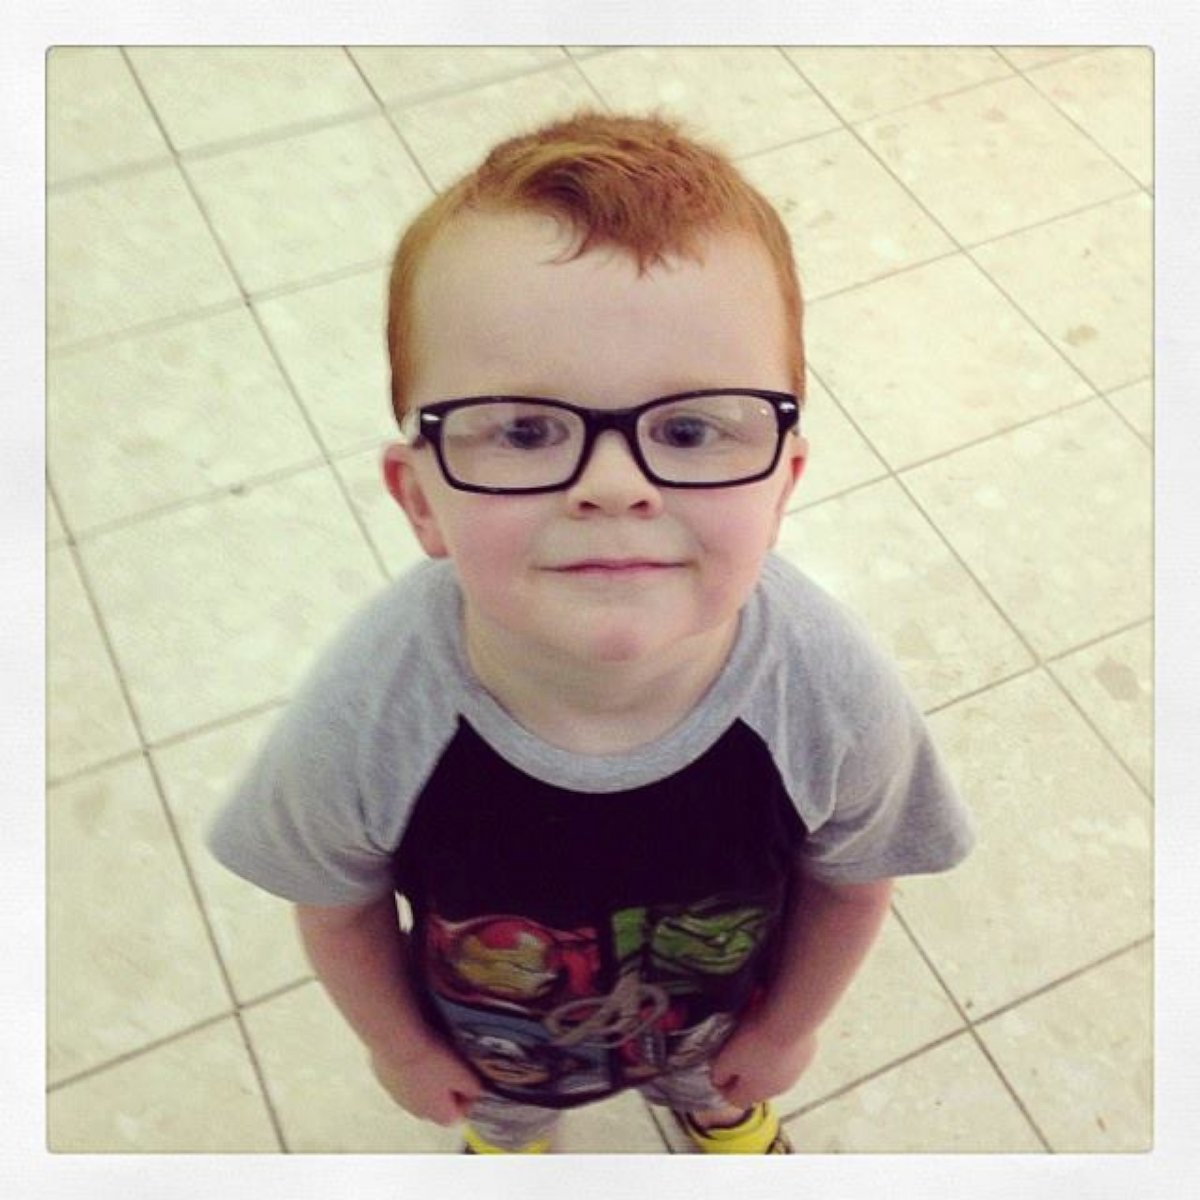 HT glasses for noah lpl 131129 Instant Index: Strangers Support 4 Year Old Upset by New Glasses